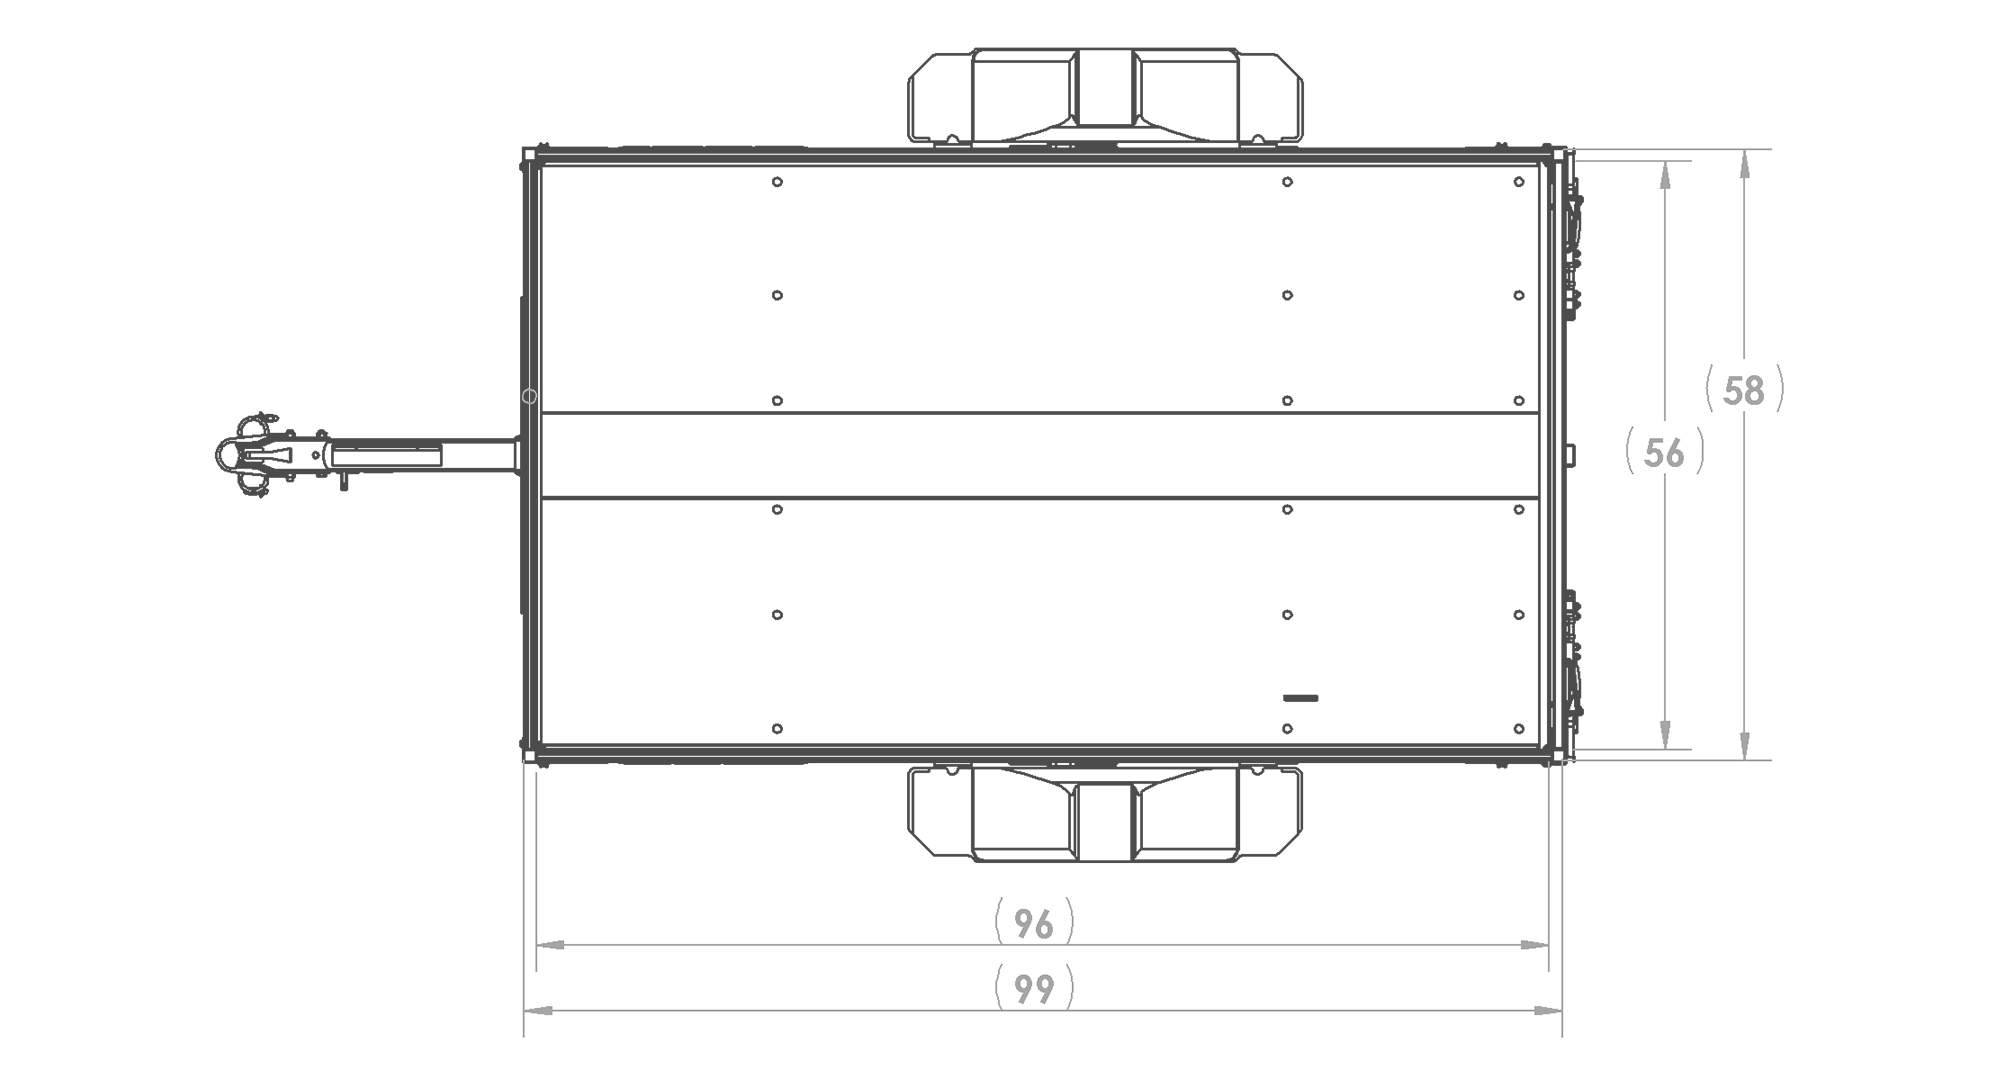 Karavan Trailer's 4.5 x 8 Ft. Aluminum Utility Trailer, model number SCU-2200-T-56, Top View Measurements